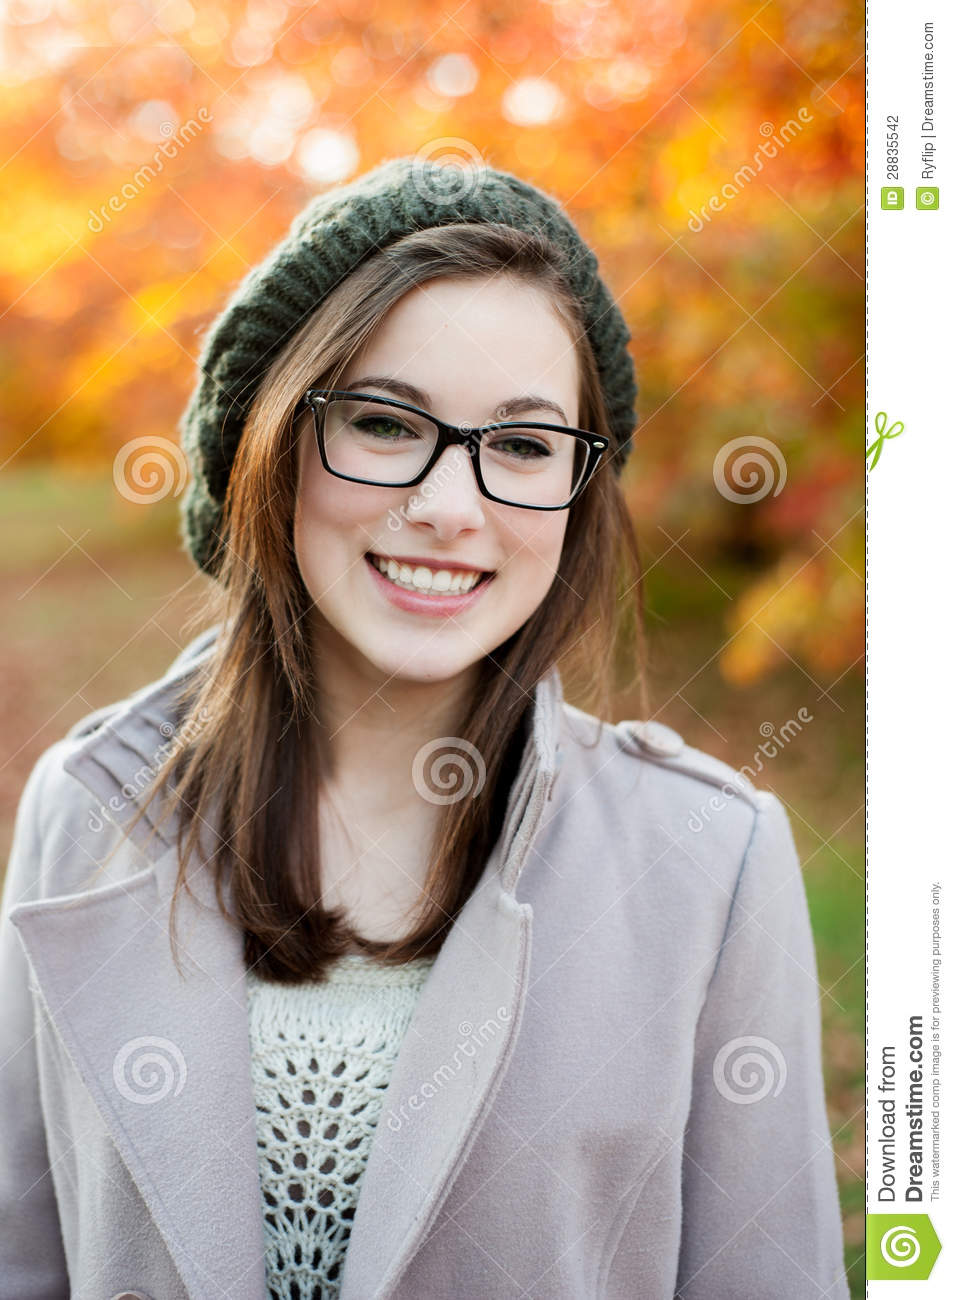 Young Woman Wearing Glasses Smiling Stock Photo - Image ...